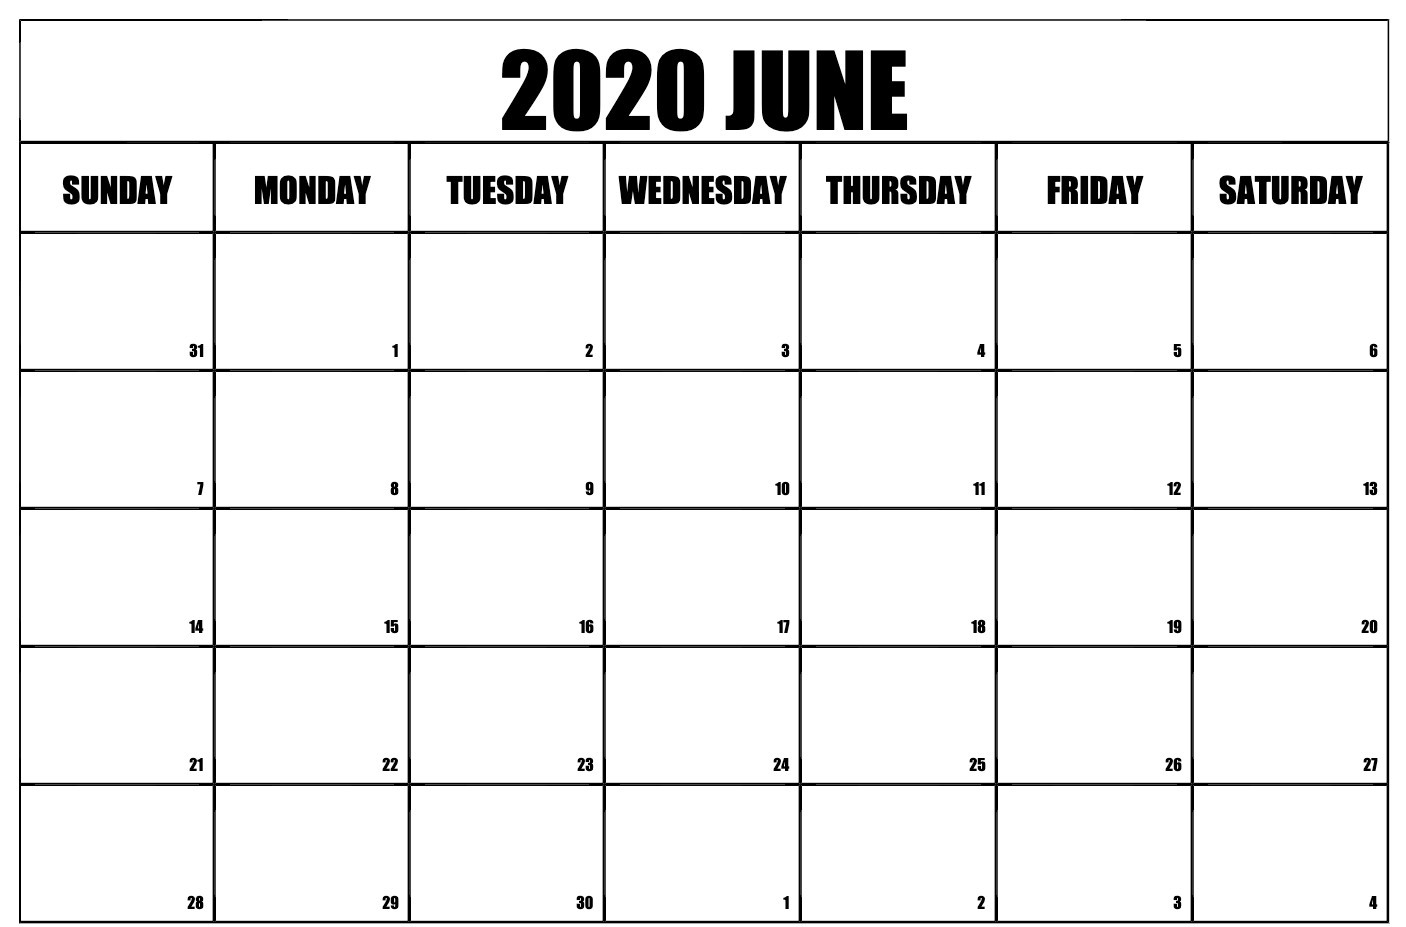 June 2020 Calendar Planner Holidays